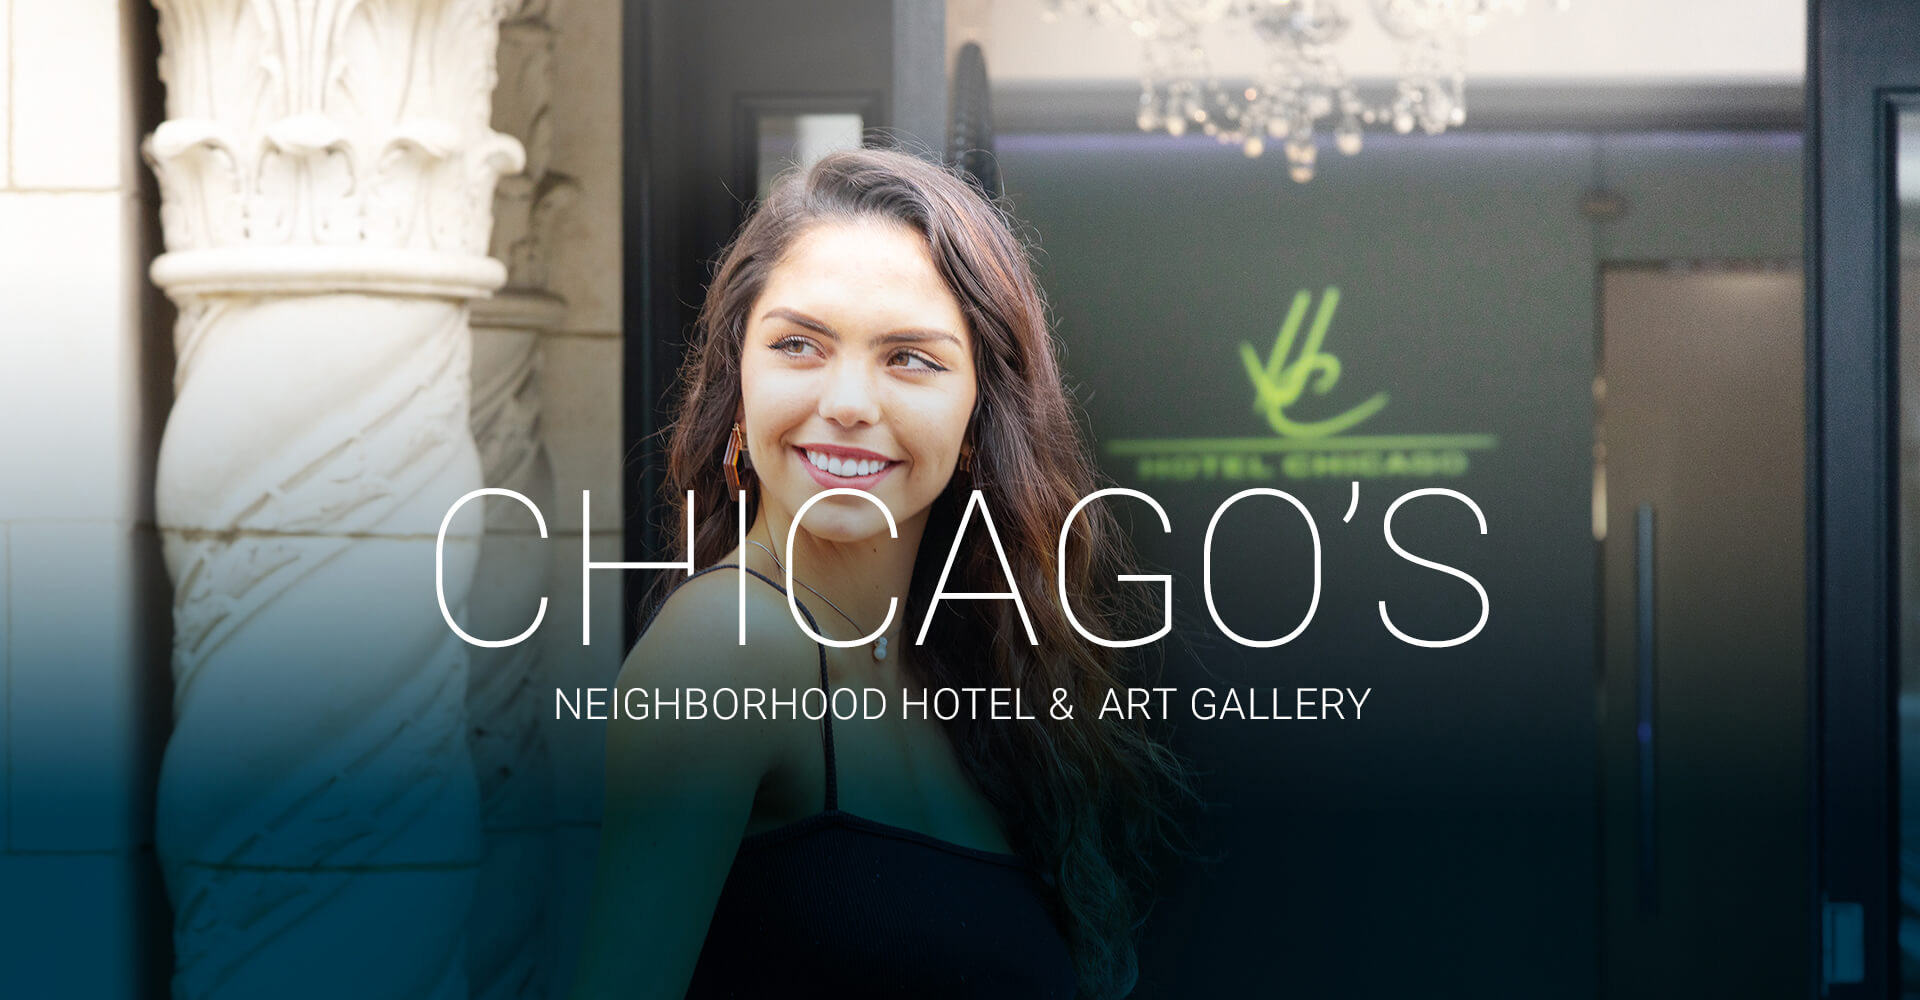 hotel chicago wl home header 5